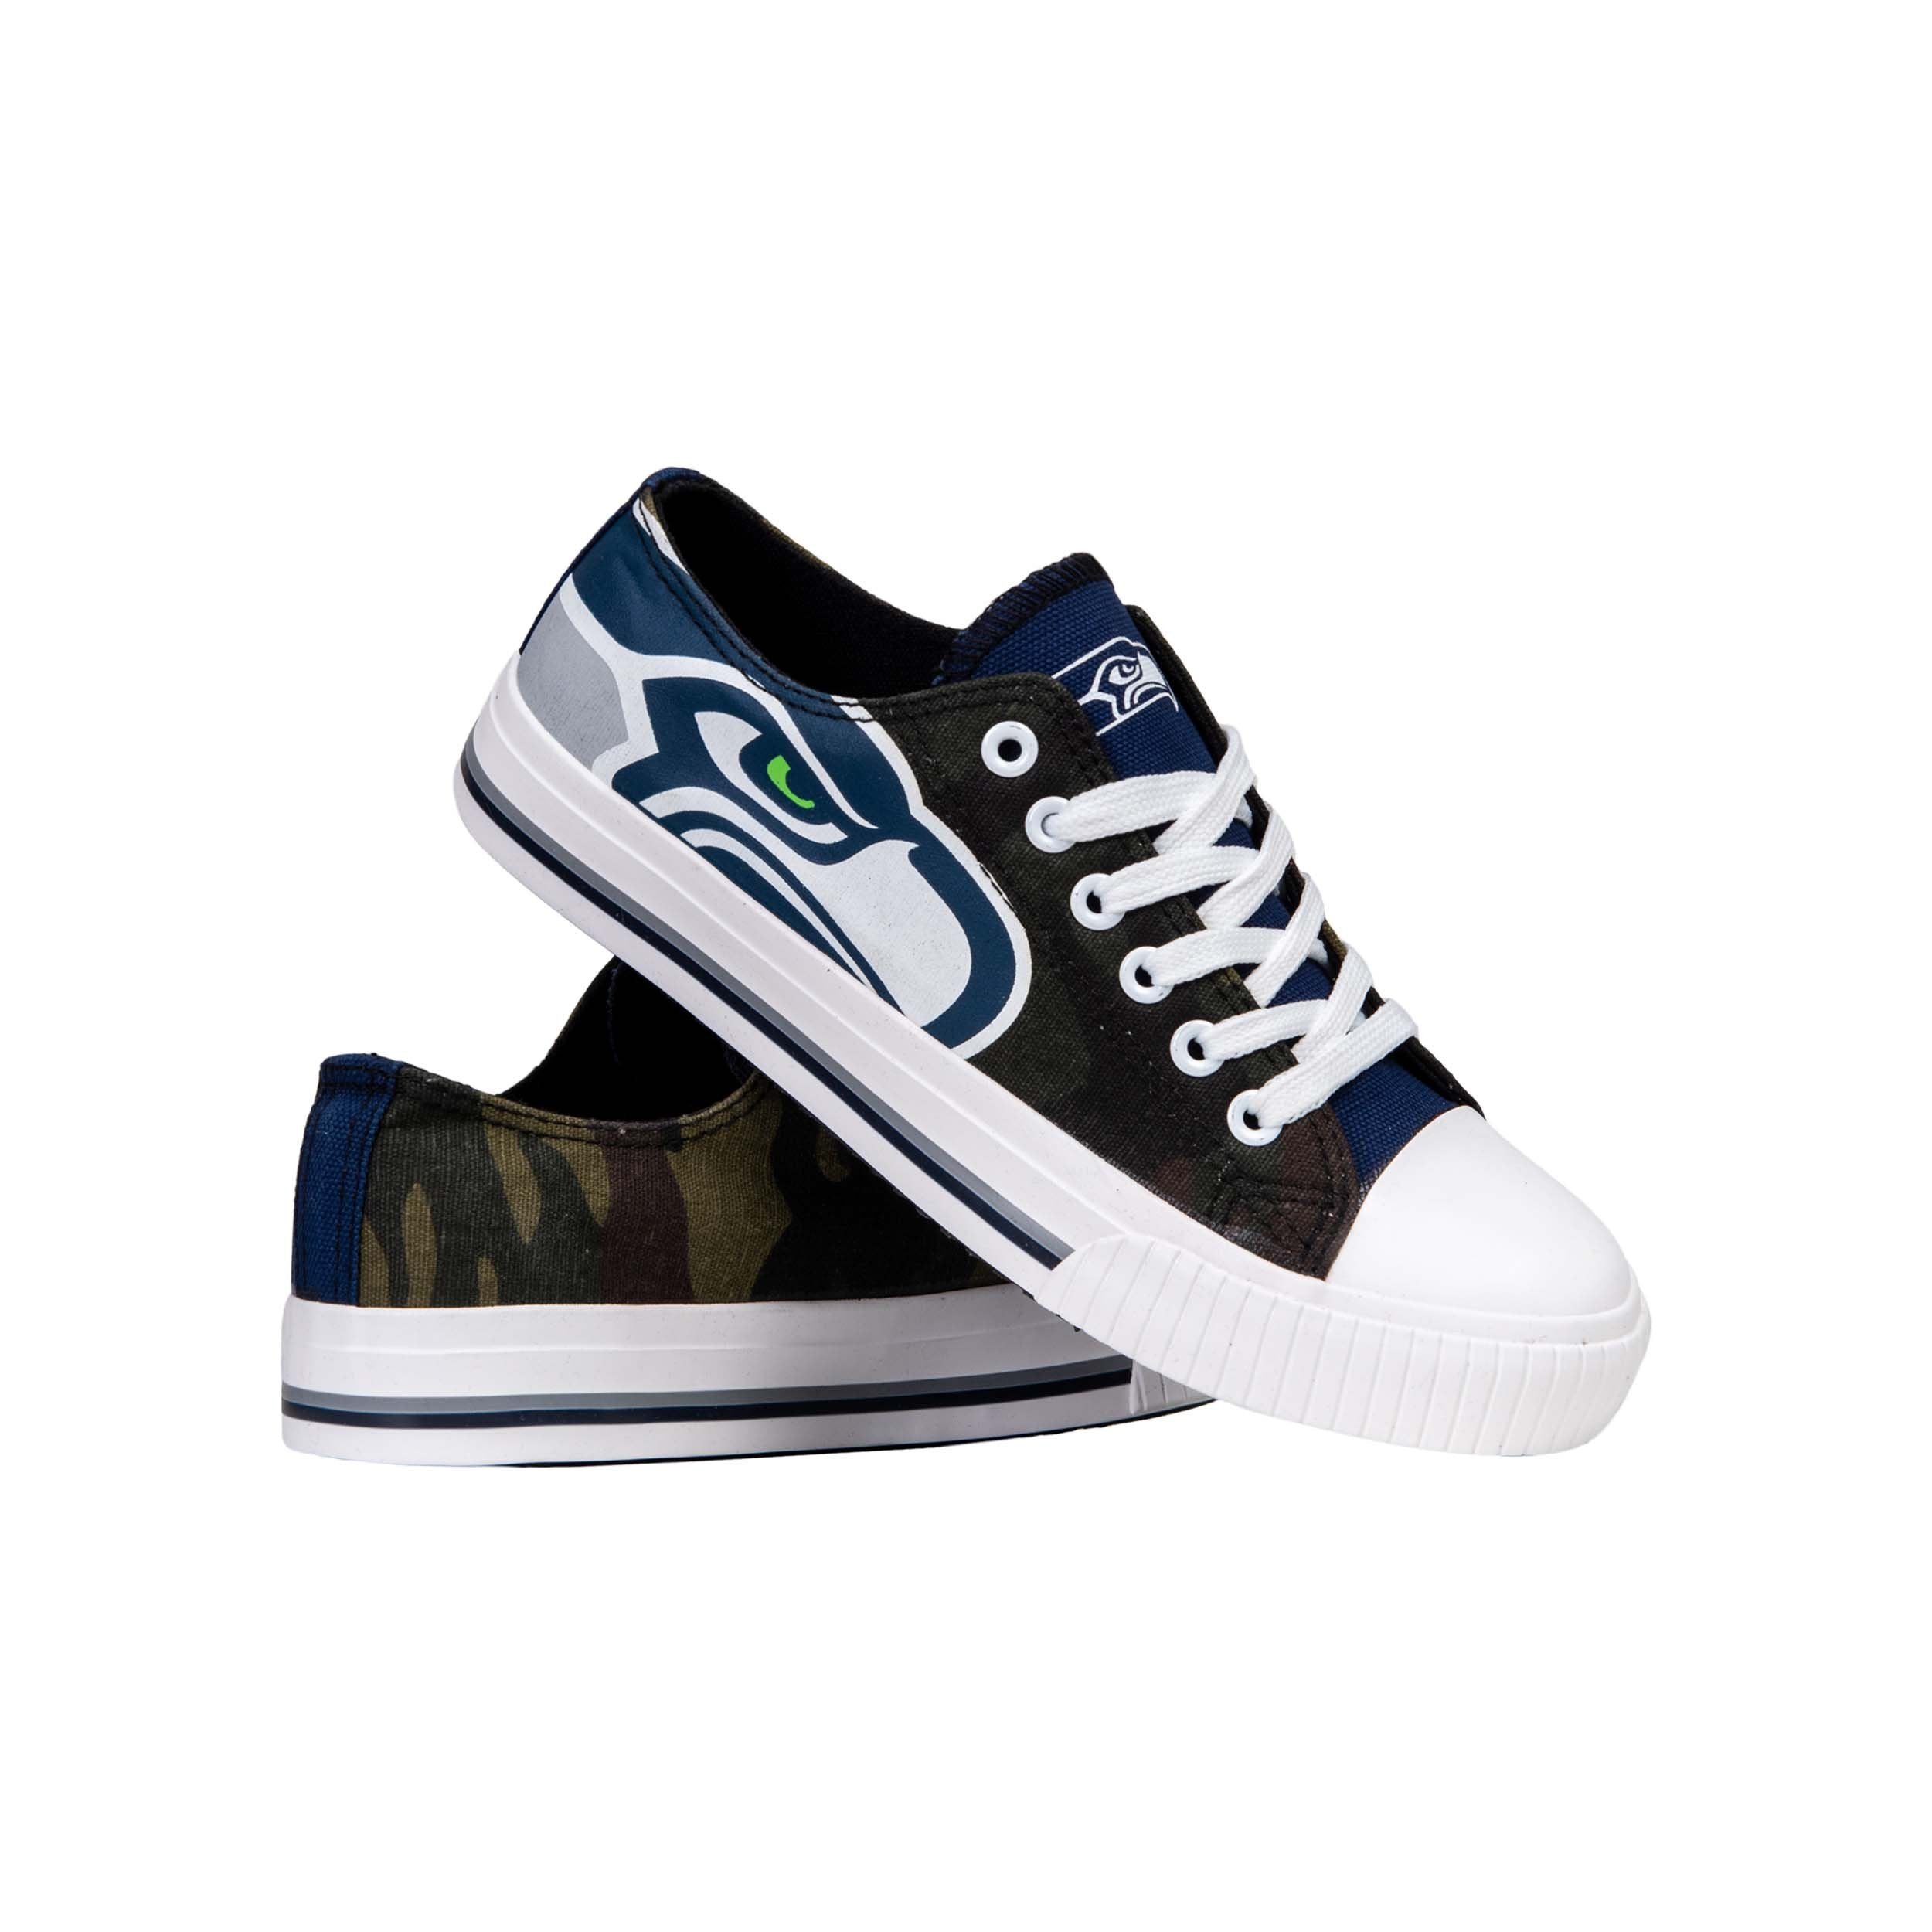 Seattle Seahawks Big Logo Low Top Sneakers Team Color Shoes US Men/'s Sizing